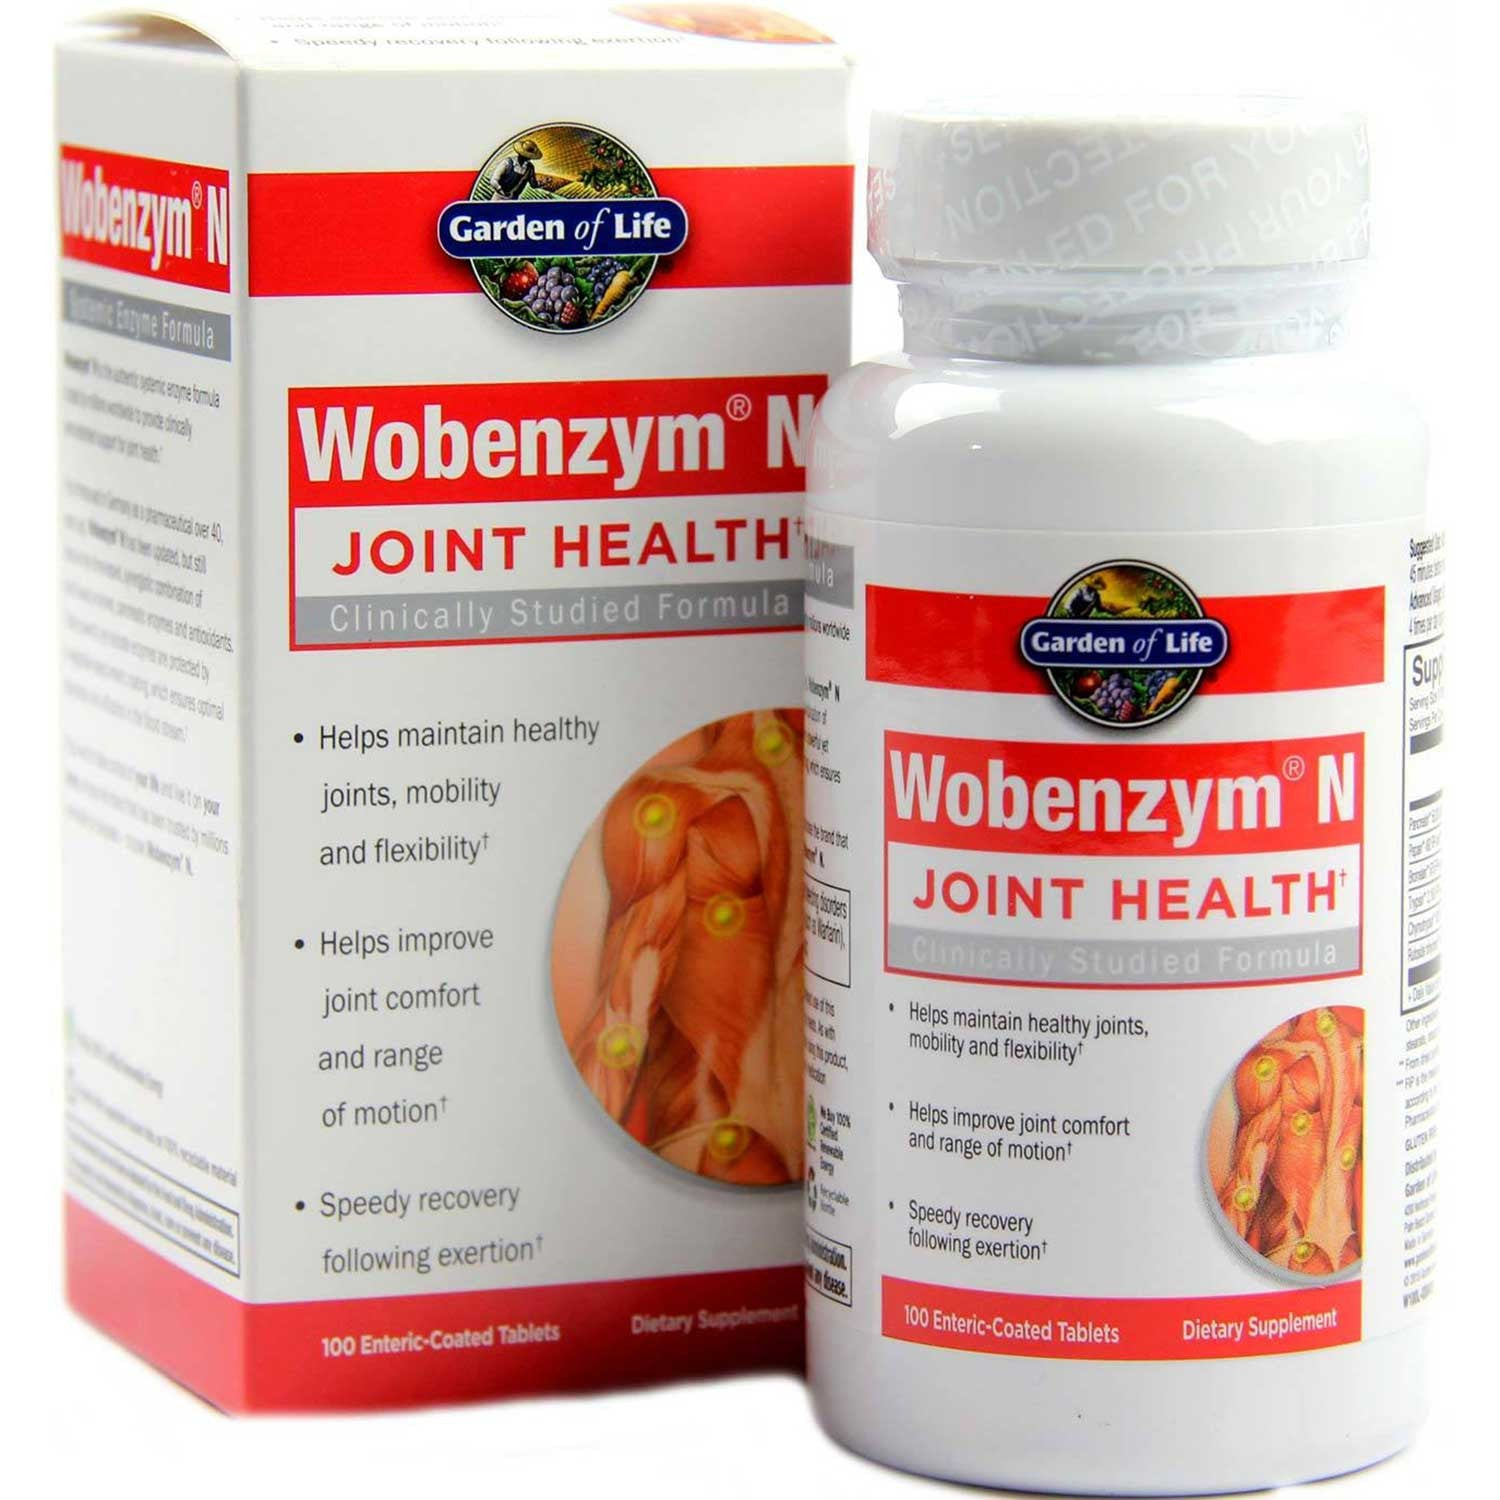 Garden of Life Wobenzym N (Enteric-Coated), 200 tabs.